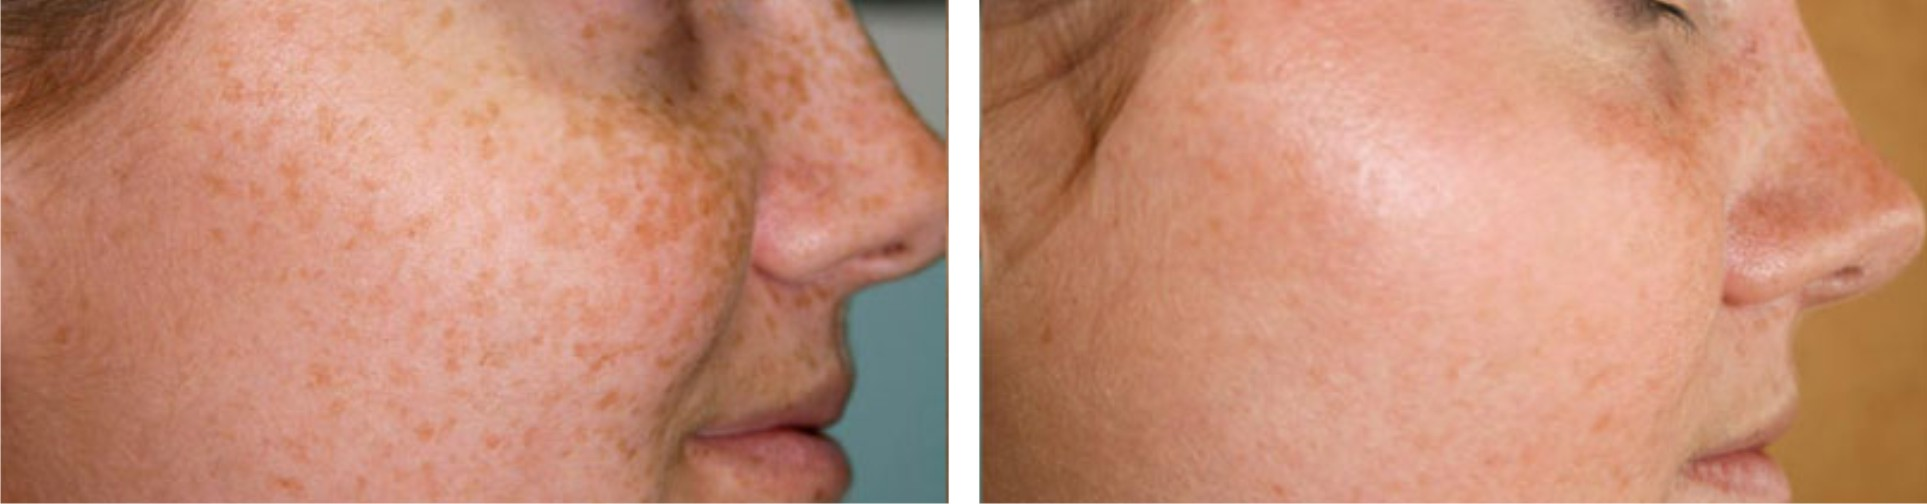 Laser Freckle Removal Image Three